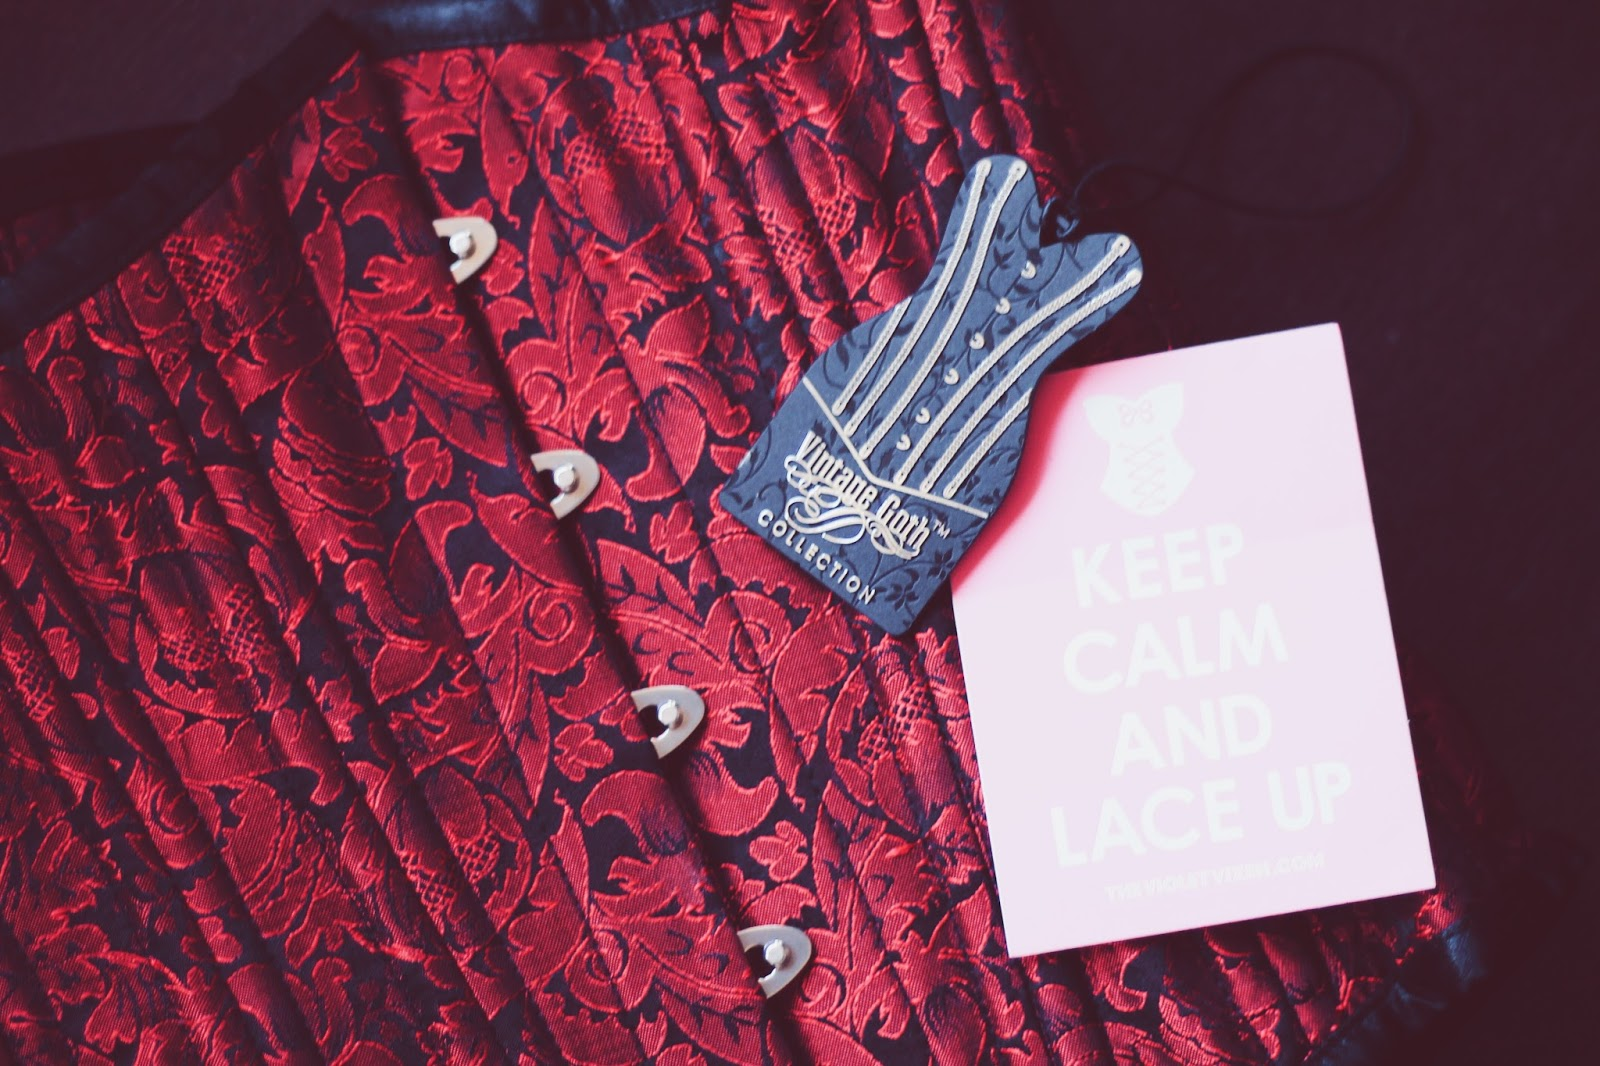 968e91076 The rich color and floral brocade print of Lucky Ginger is luxurious and  looks even prettier alive! The red and black combination is irresistible  and the ...